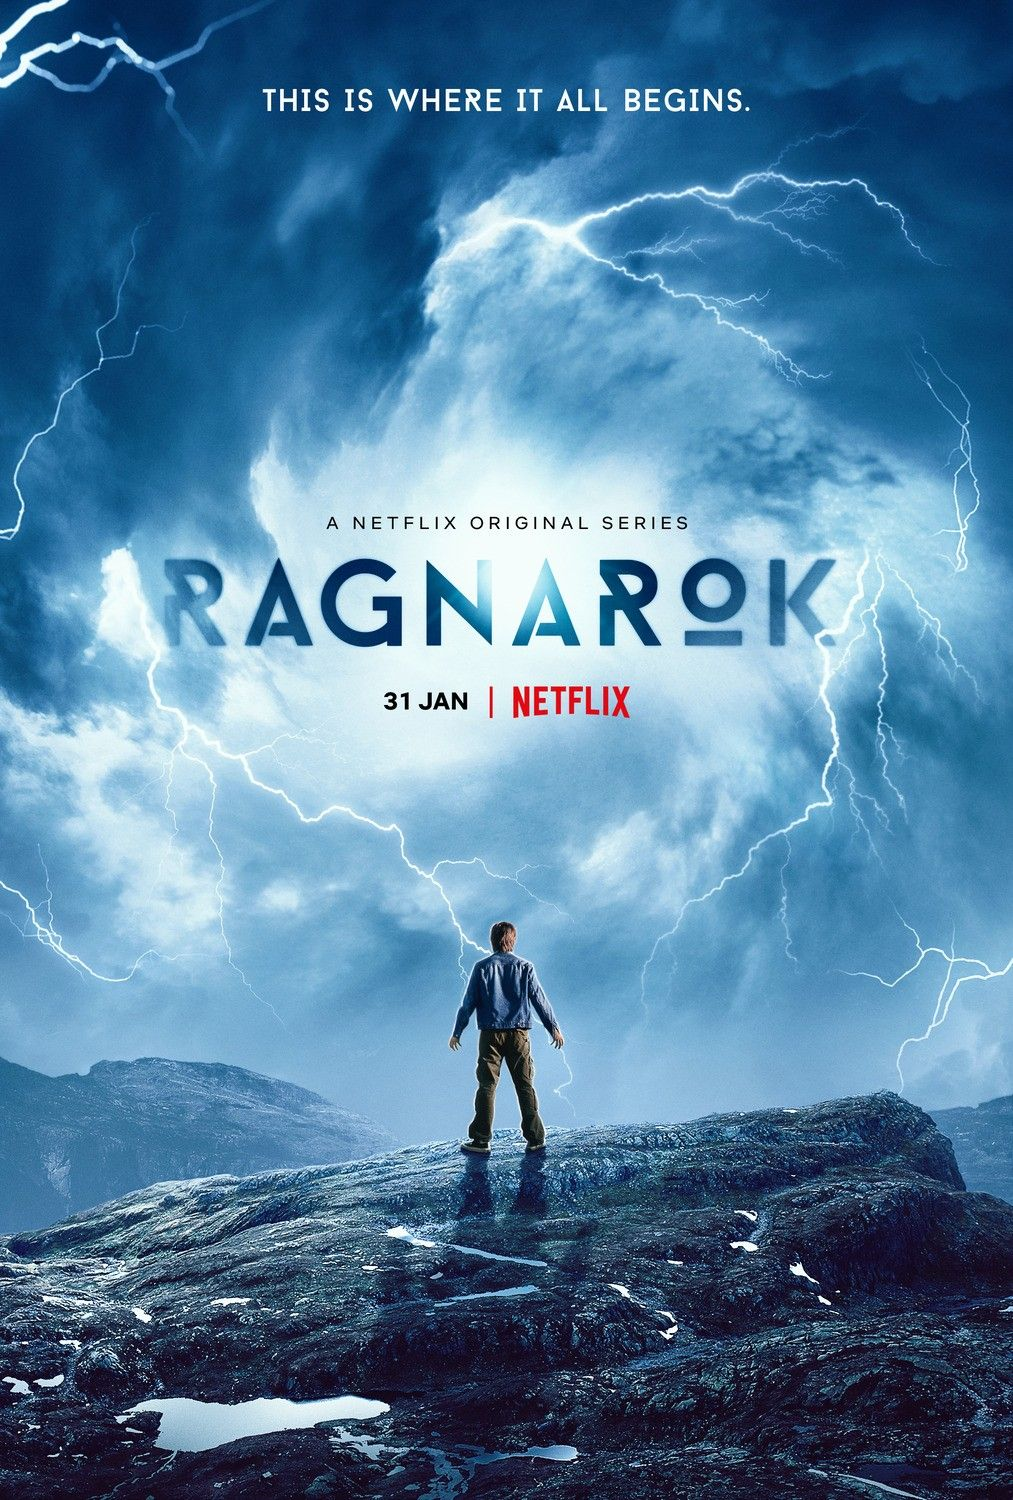 Two New Posters For The New Netflix Original Series Ragnarok